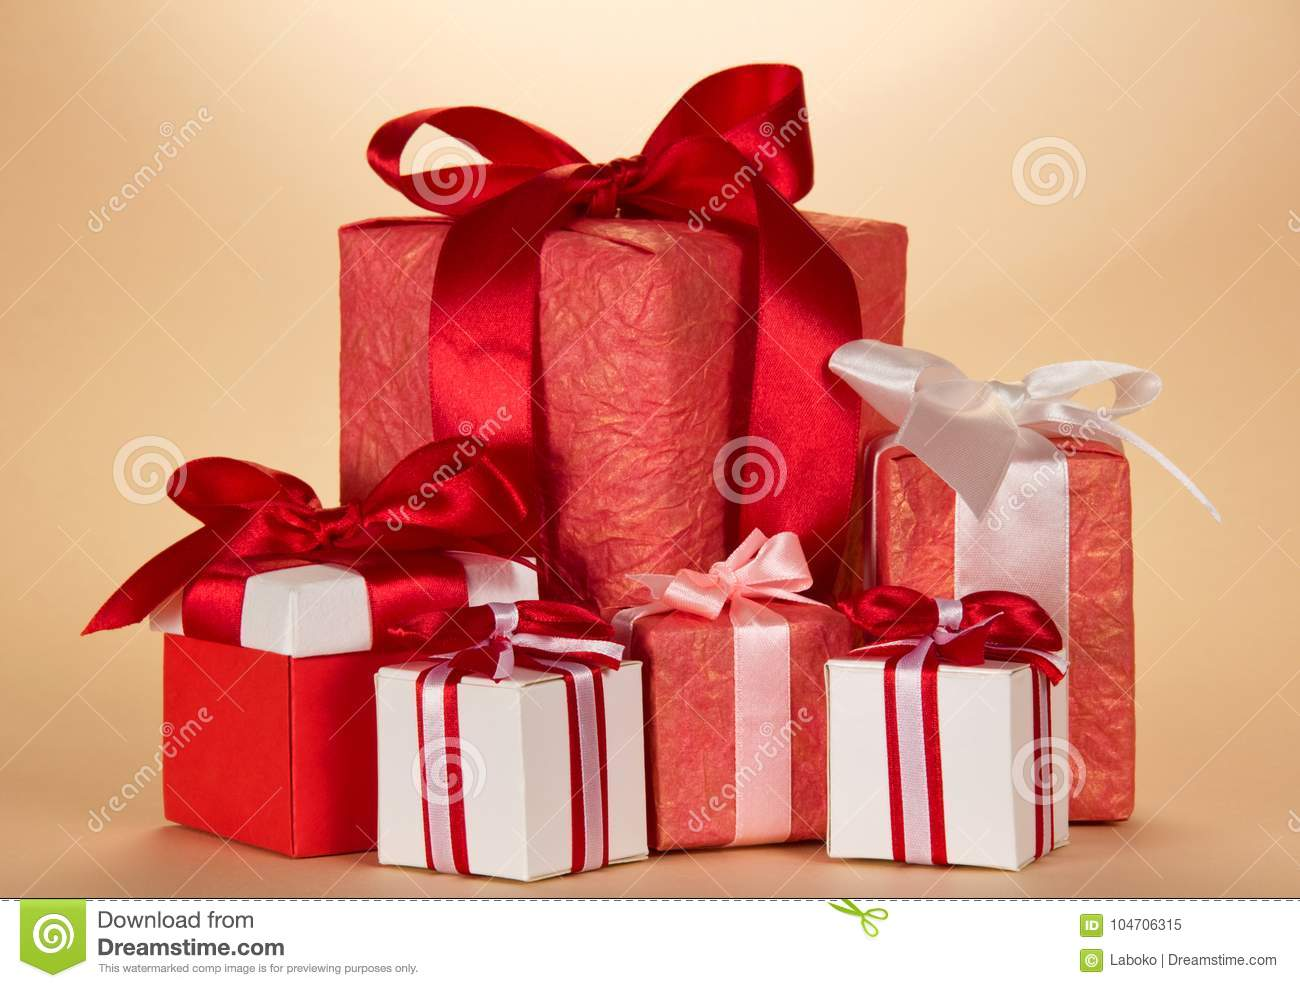 Small Christmas Gifts.Many Large And Small Christmas Gifts On Beige Stock Image